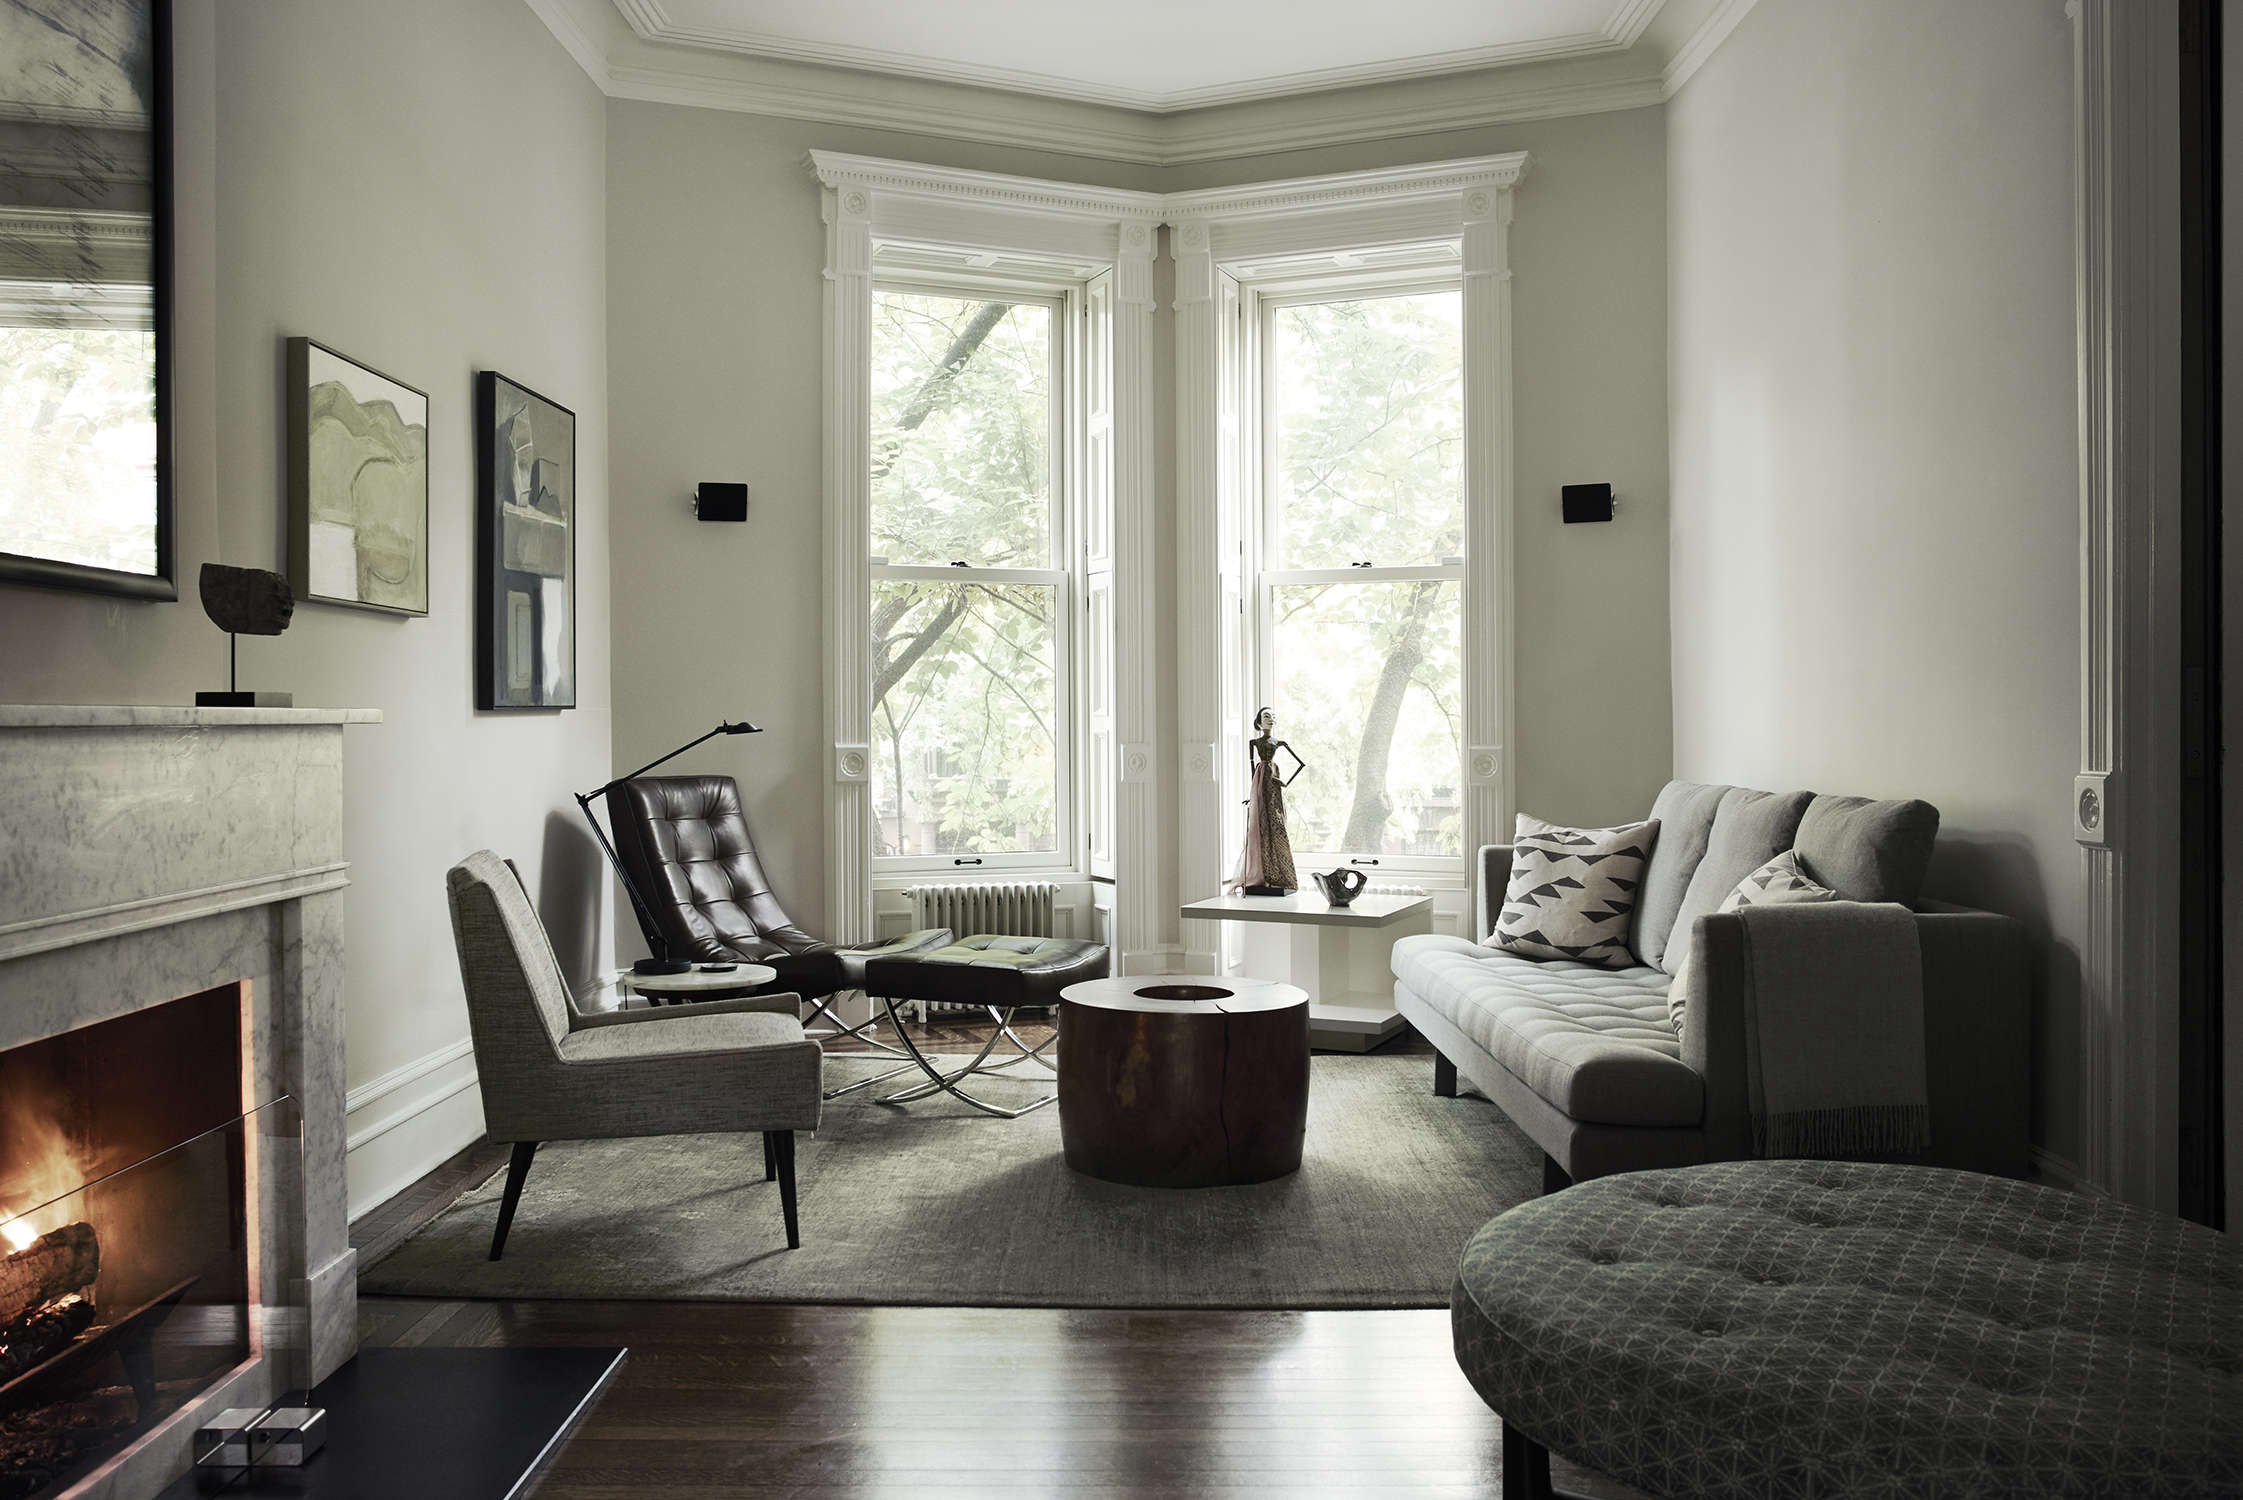 brooklyn townhouse remodel by bangia agostinho architecture and suzanne shaker  11